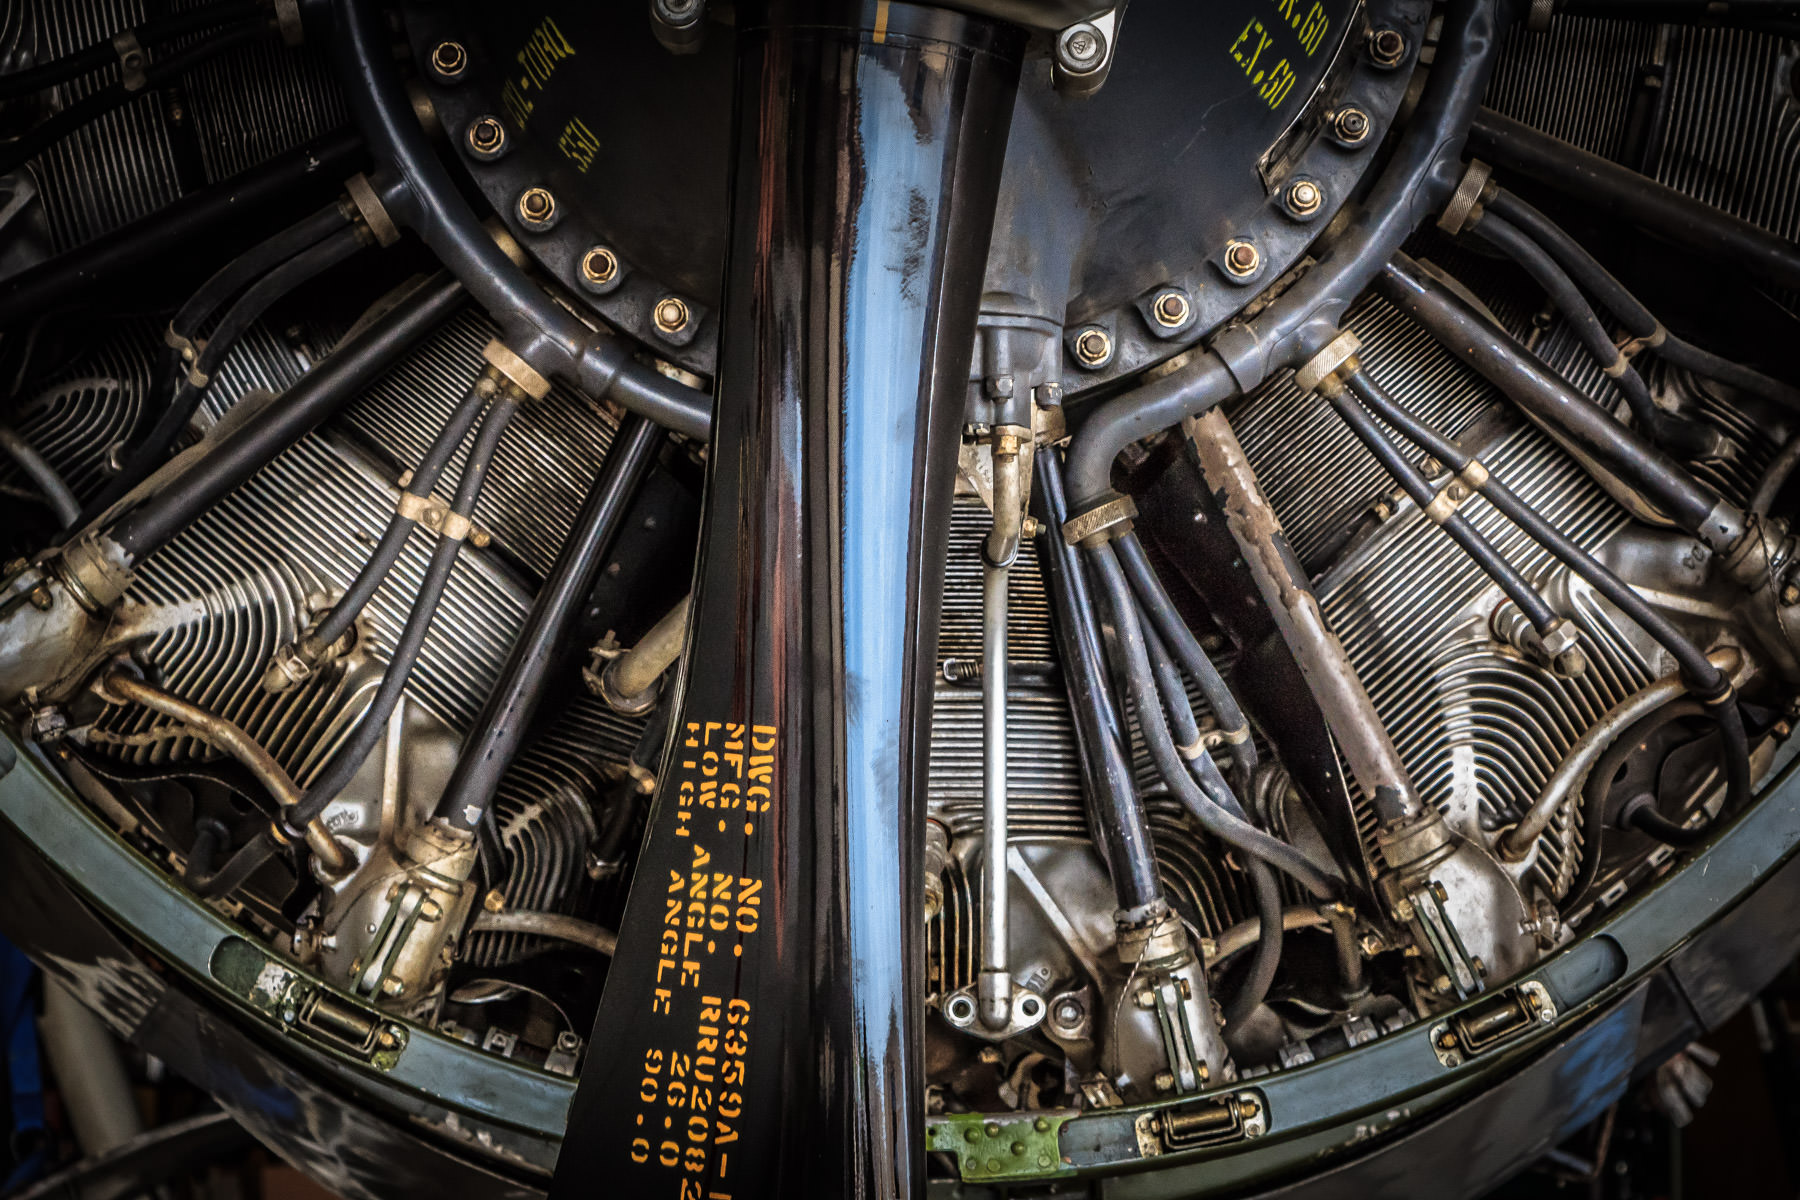 Detail of an airplane engine, spotted at Addison, Texas' Cavanaugh Flight Museum.